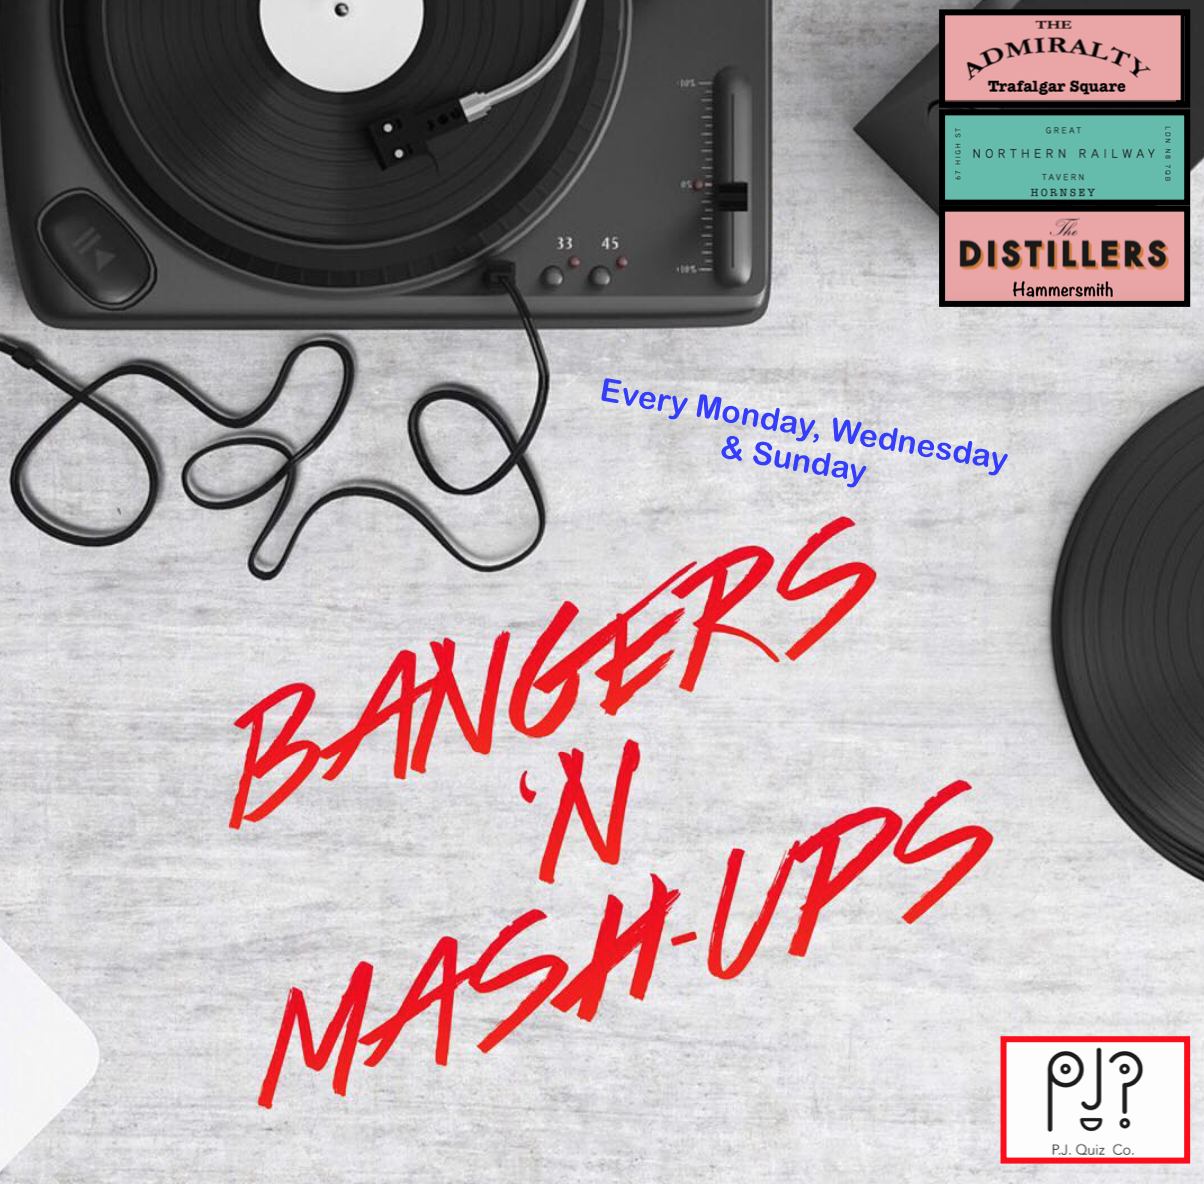 Our Famous Mash Up Music Round.  I have been doing this since my very first Quiz in 2010. Here, 2 Songs are mashed together over 5 Mash Ups each week. Keeps Bringing teams back & showcases some of my finest Dad Dancing moves as a Quiz Host & Entertainer! Expect random mixes like Nena with Jay Z or Linkin Park with Celine Dion. It really is a treat for the ears!  Featured on Mondays (At the Admiralty, Trafalgar Square), Wednesdays (at the GNRT in Hornsey) & on Sundays (at the Distillers in Hammersmith).